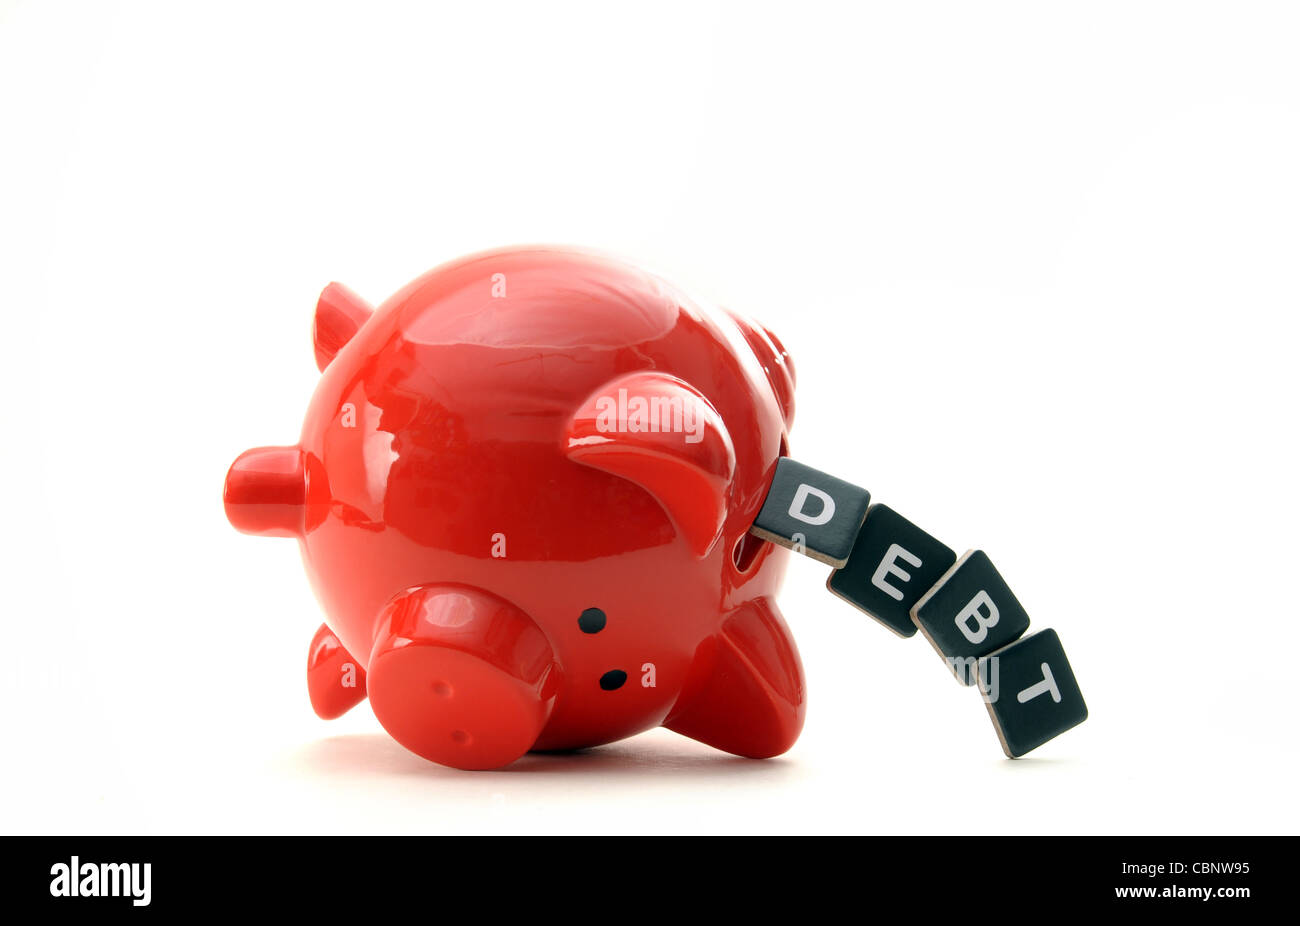 OVERTURNED RED PIGGYBANK WITH LETTERS SPELLING  DEBT  RE THE ECONOMY CREDIT CRUNCH SAVINGS LOANS DEBT FINANCIAL - Stock Image